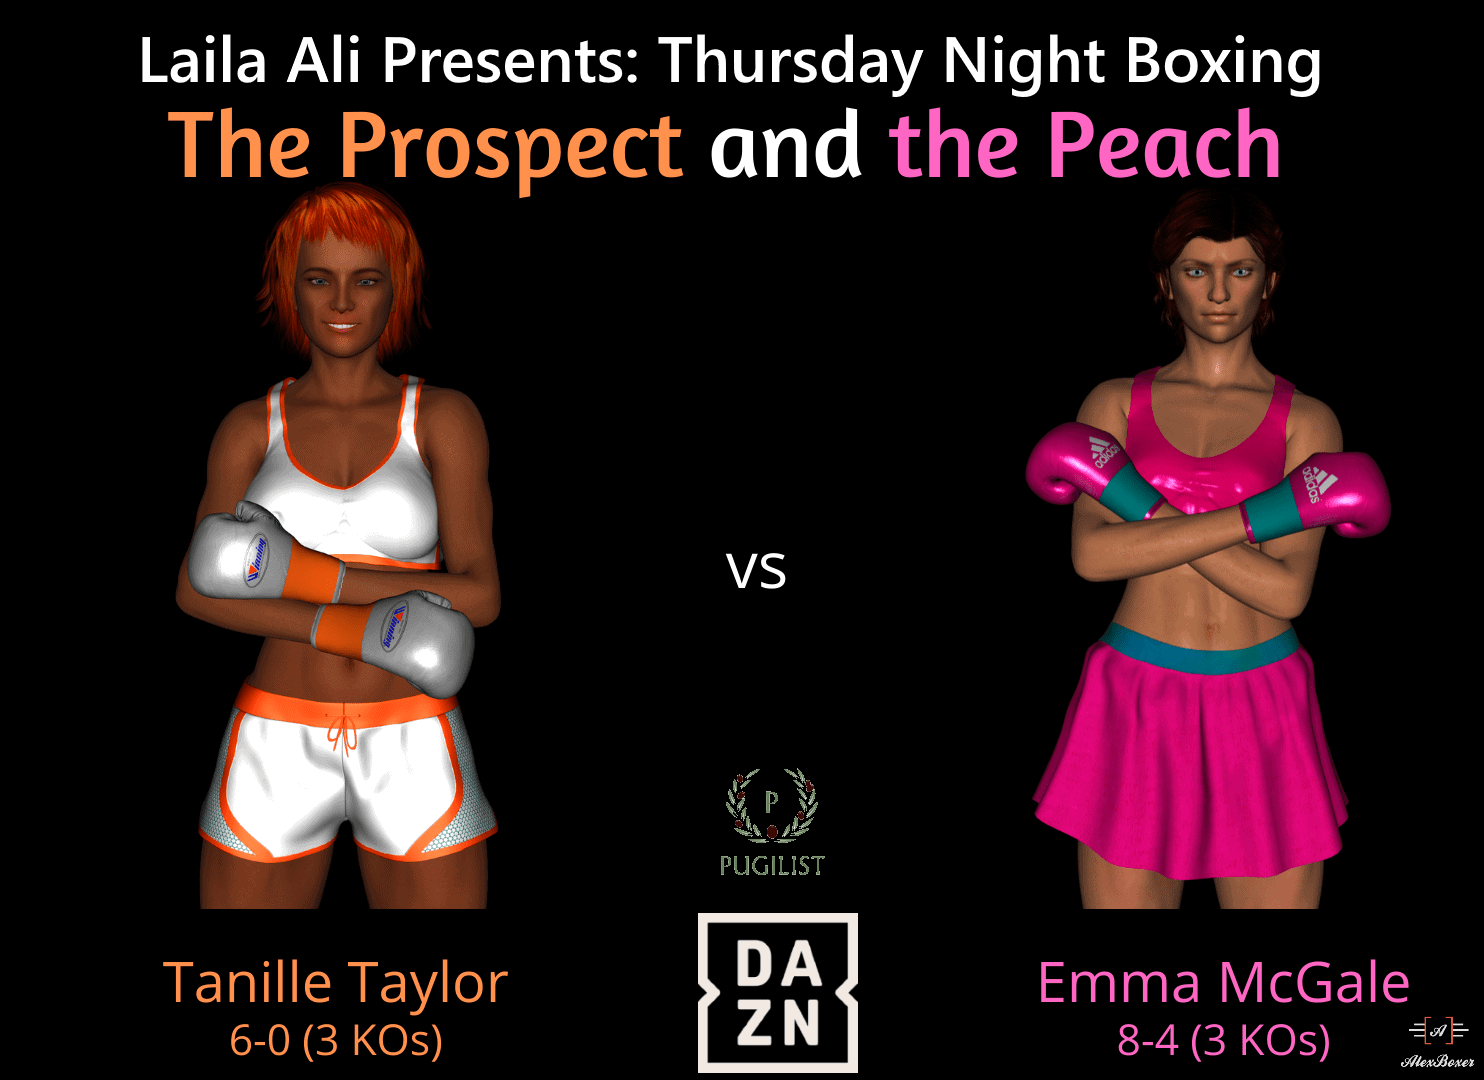 Tanille vs. Emma - The Fight Poster